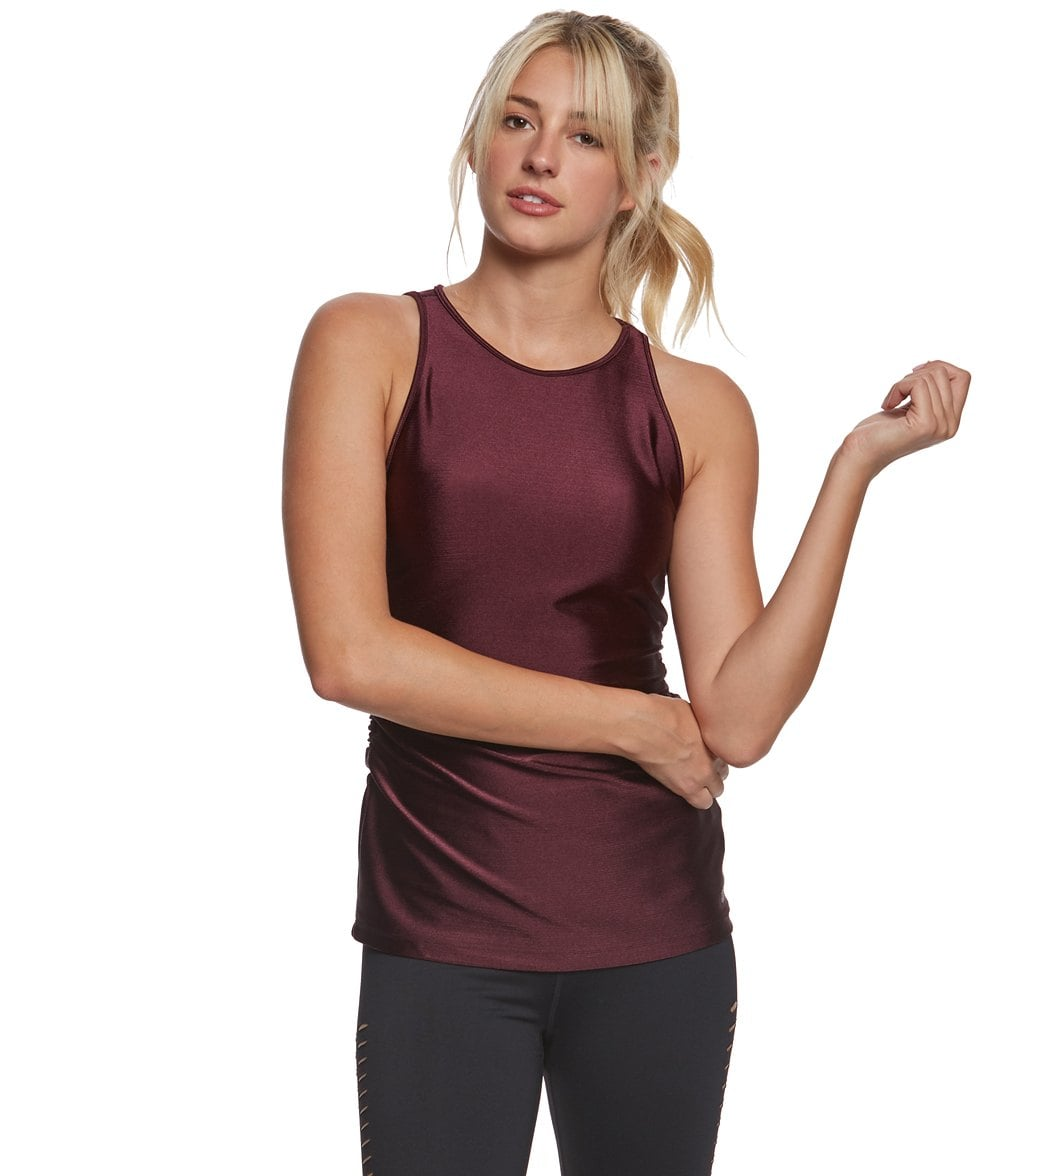 Pink Lotus Movement Disco Royal High Neck Yoga Tank Top 27 Yoga Gifts Under 25 That Will Thrill Even The Most Zen Yogi Popsugar Fitness Photo 26